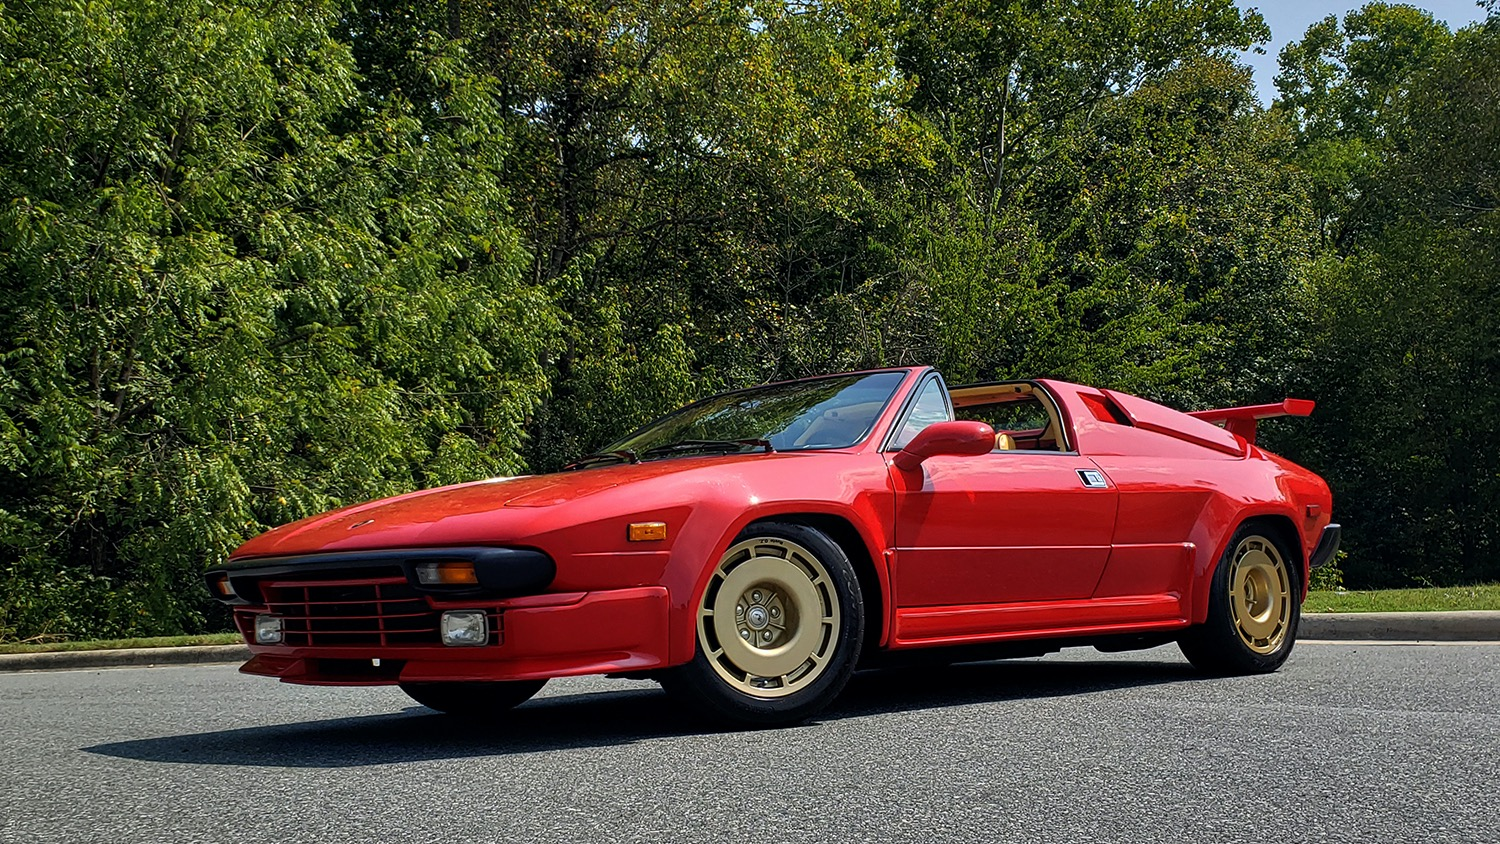 Used 1988 Lamborghini JALPA 3.5 / 5-SPD MANUAL / LOW MILES / EXCELLENT CONDITION for sale Sold at Formula Imports in Charlotte NC 28227 17